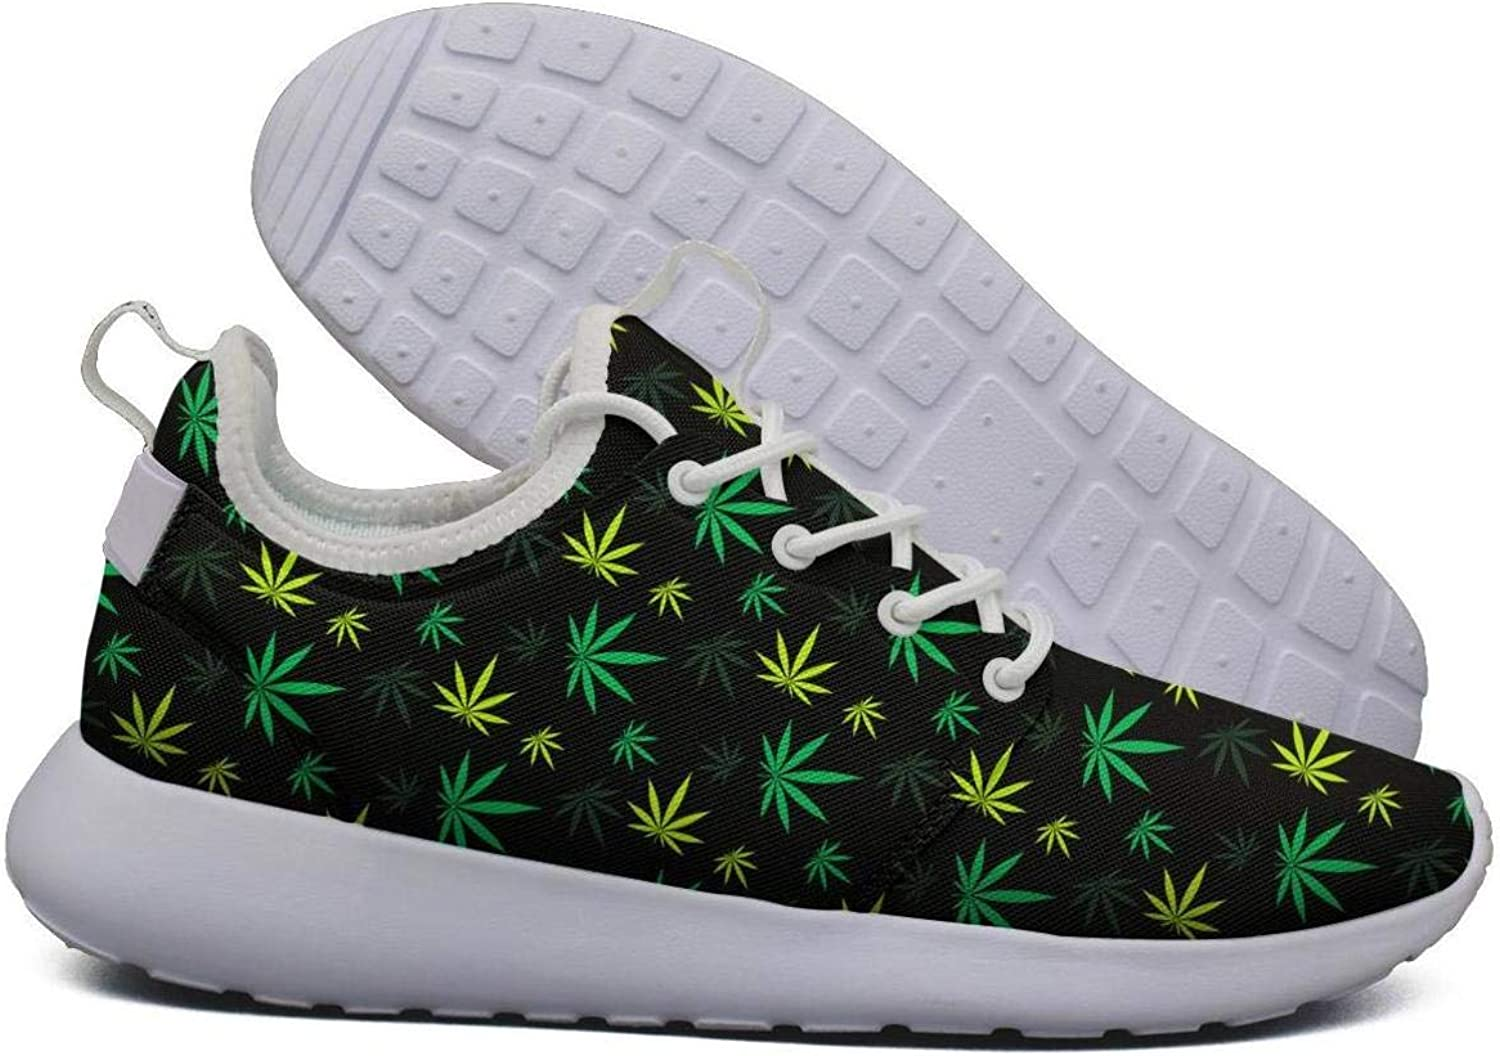 Hoohle Sports Womens Yellow Green Cannabis Patch Flex Mesh Roshe 2 Lightweight Cute Walking Jogging shoes